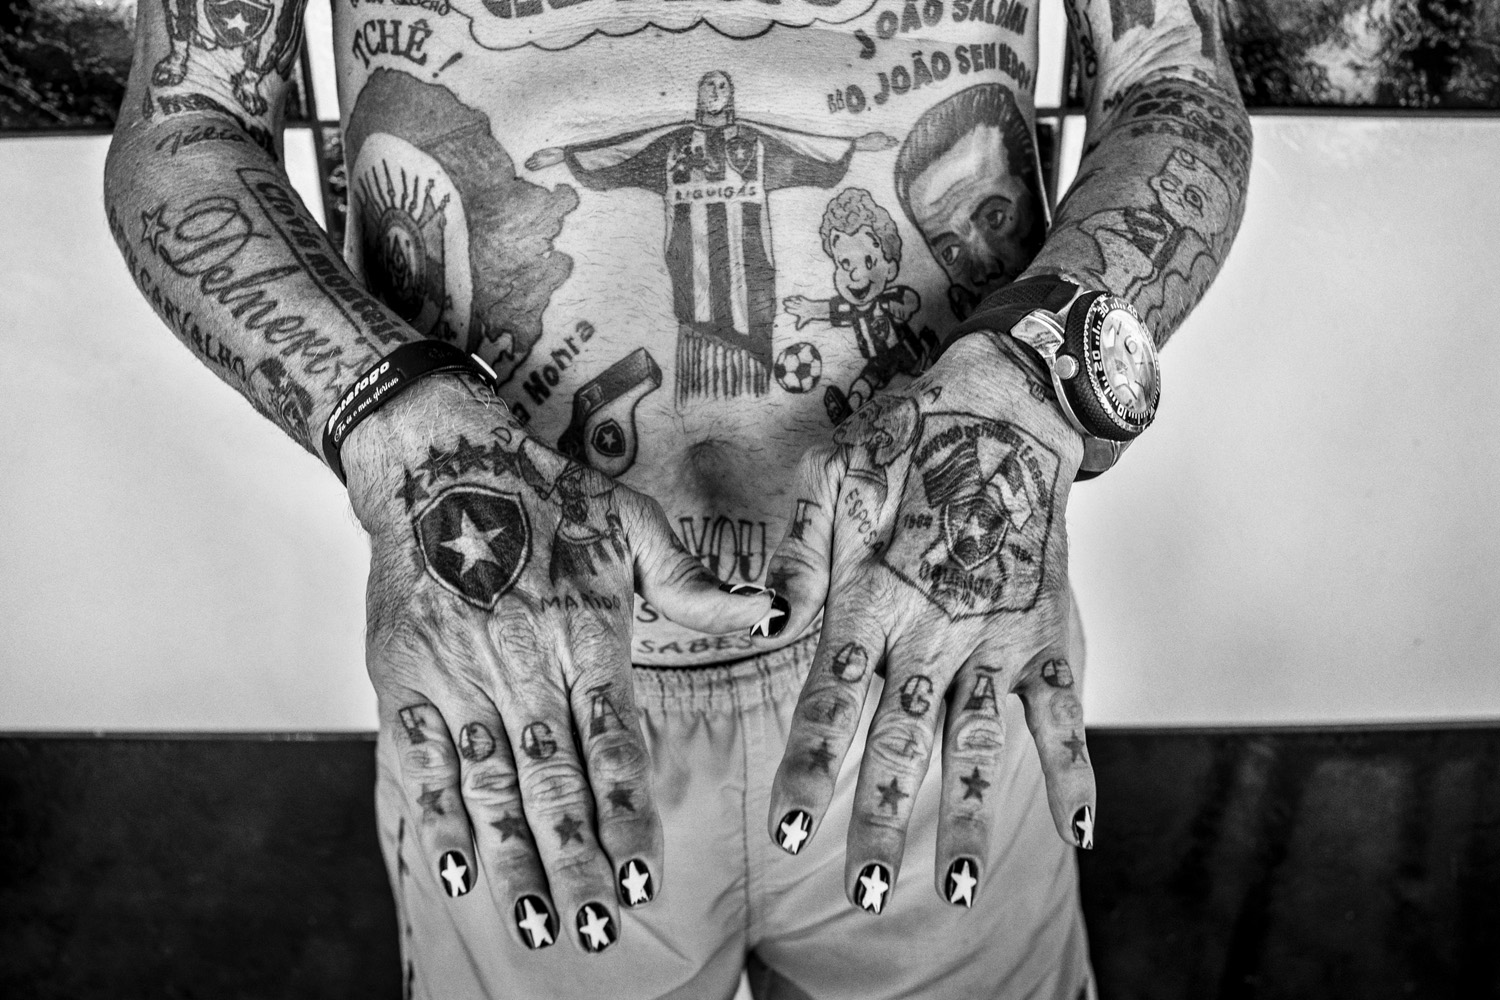 Delneri Martins Viana, 69, has 82 tattoos that pay homage to his team, Botafogo de Futebol e Regatas. He has had the tattoos done over the course of 15 years, since he retired from the army. He goes to his tattoo artist every Thursday to have a new tattoo done, or to improve an old one. The tattoos include the team's shield, names of players, results of matches and even part of the club's anthem. He only owns clothes that have the Botafogo crest. Once a week he paints his finger and toe nails with the stars of the club's logo.